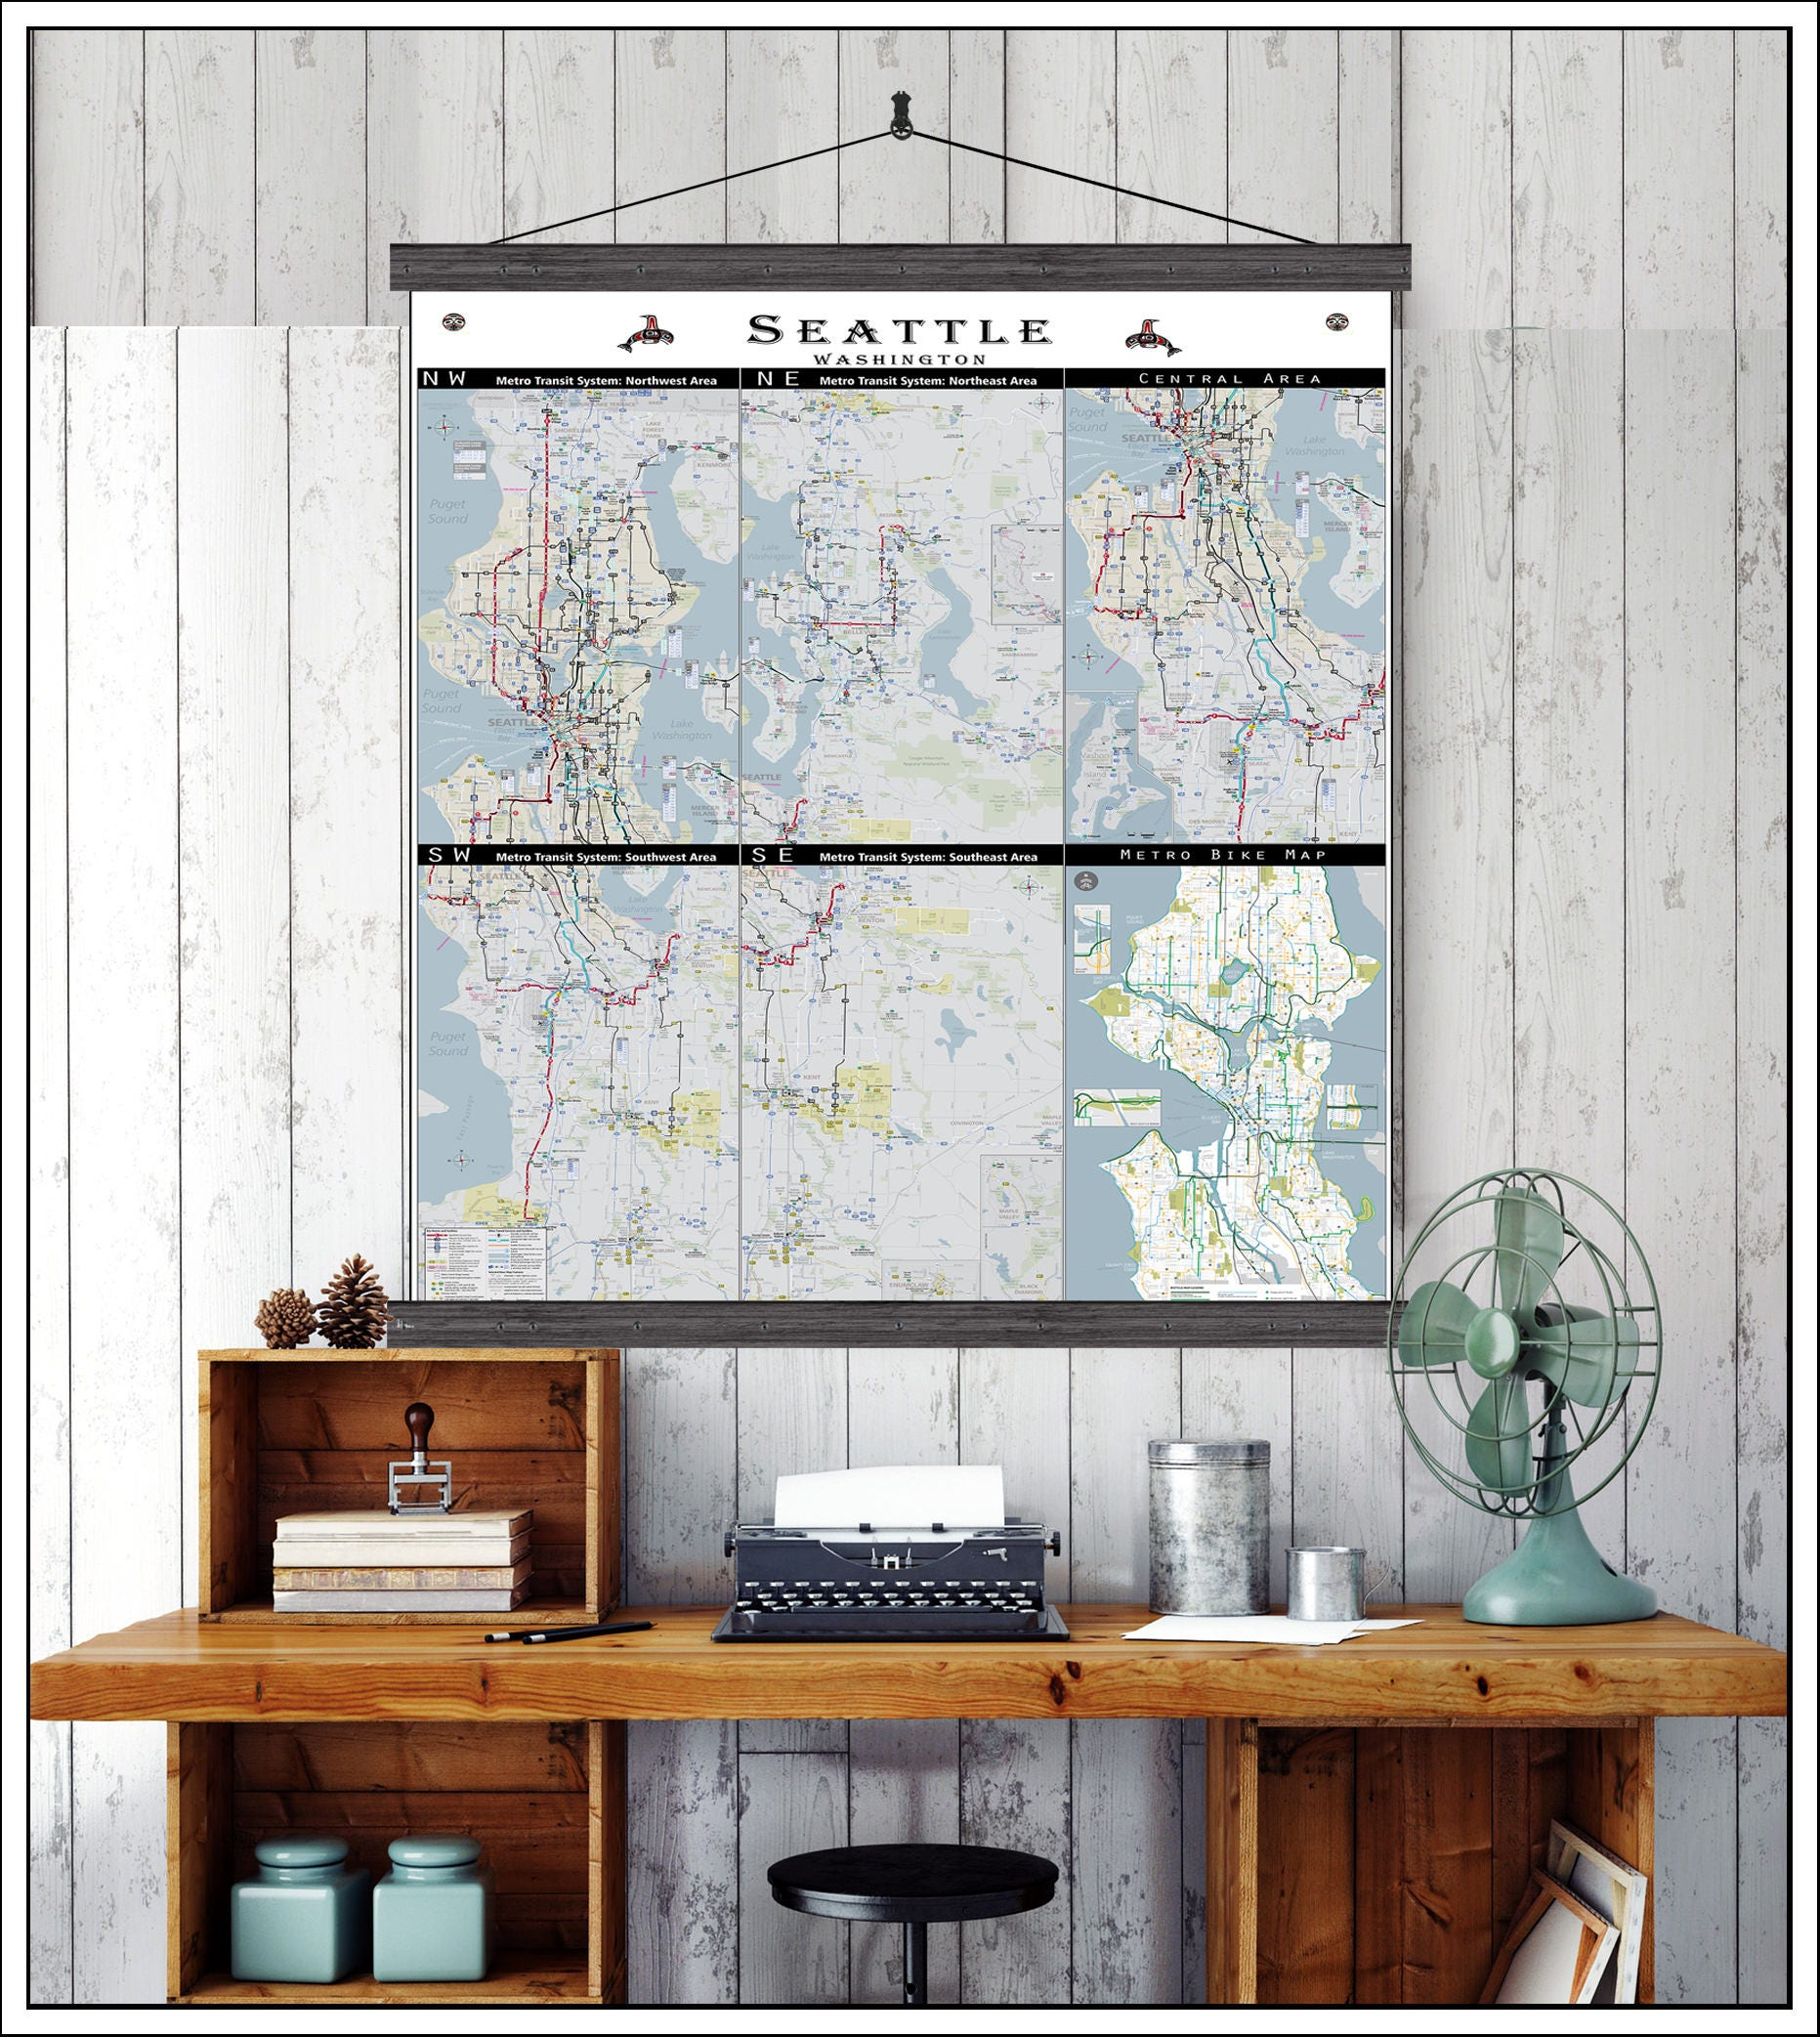 Subway Map Bike.Seattle Map 40x60 Up To 5x8ft Map Seattle Metro Map Subway Map